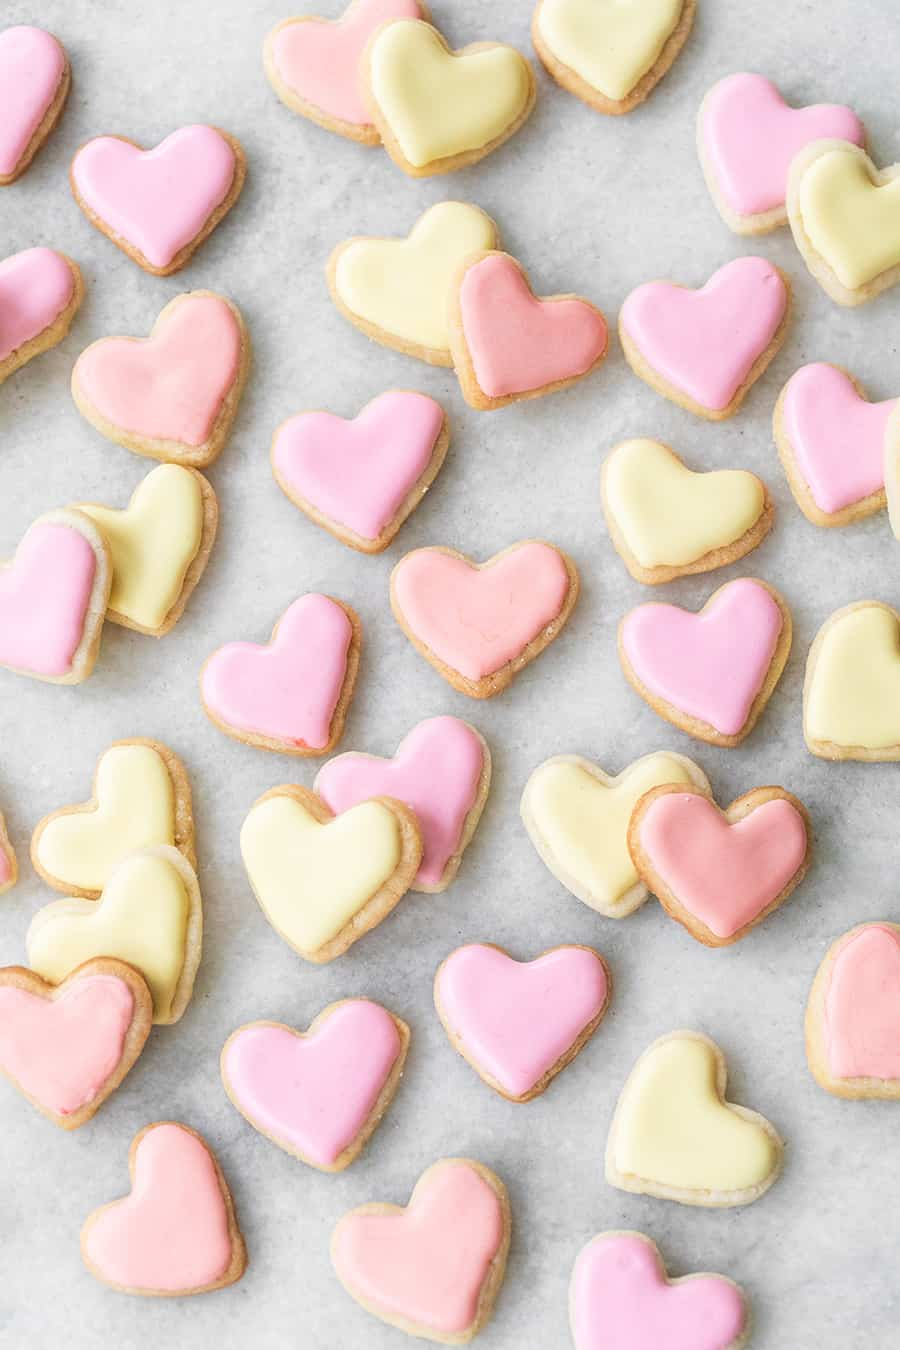 Frosted Mini Heart Shaped Sugar Cookies